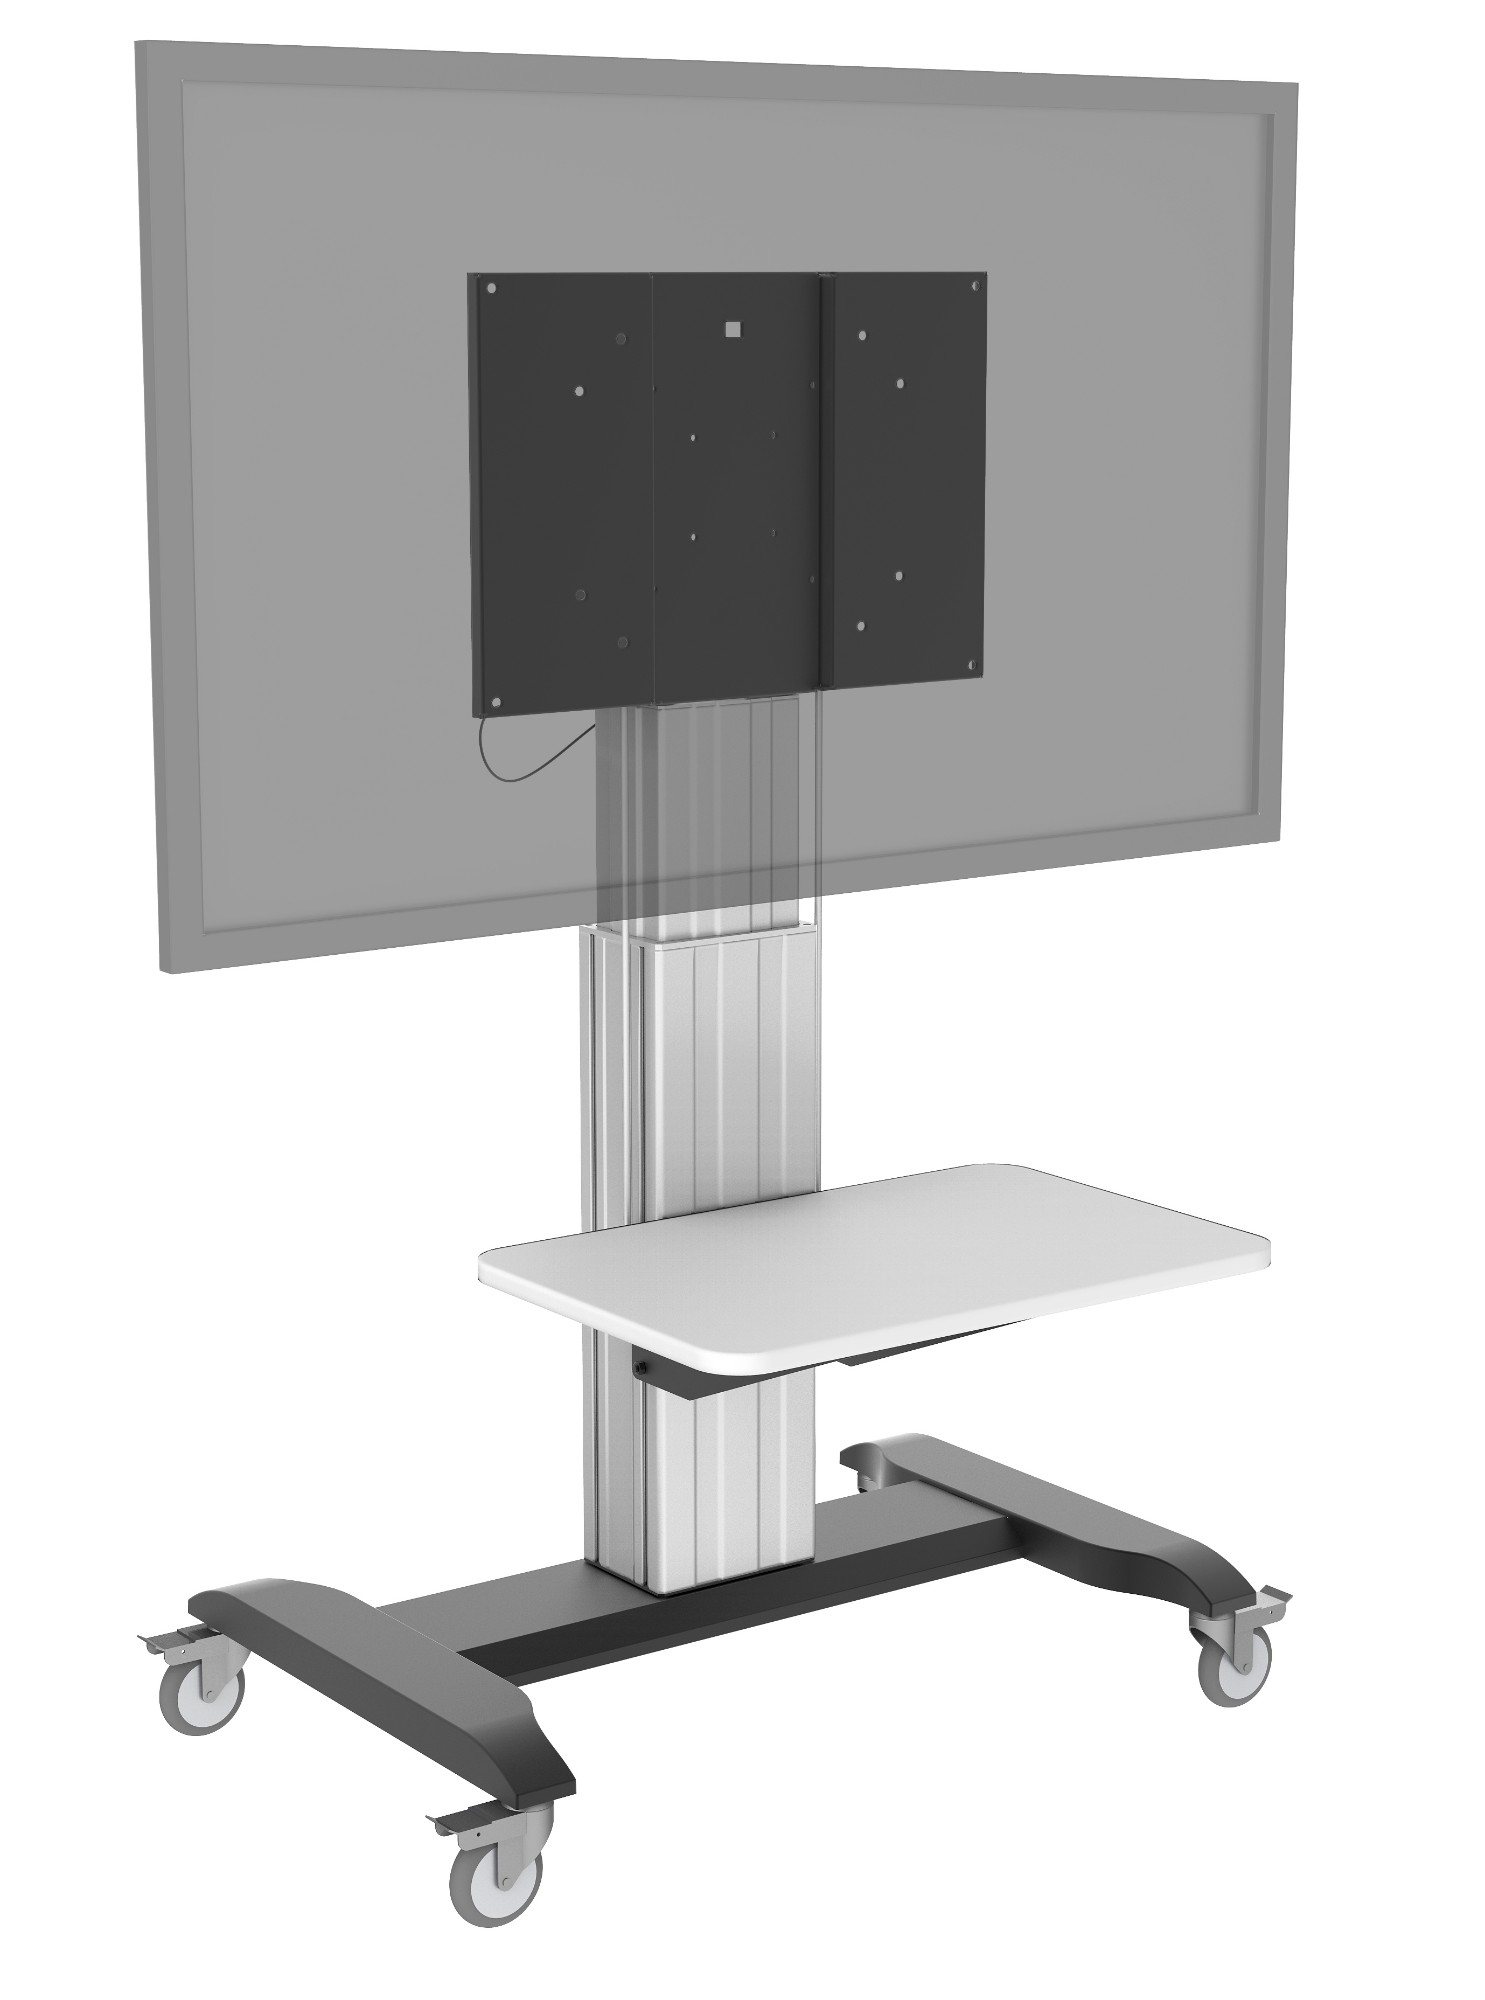 Vision TM-IFP SHELF flat panel floorstand